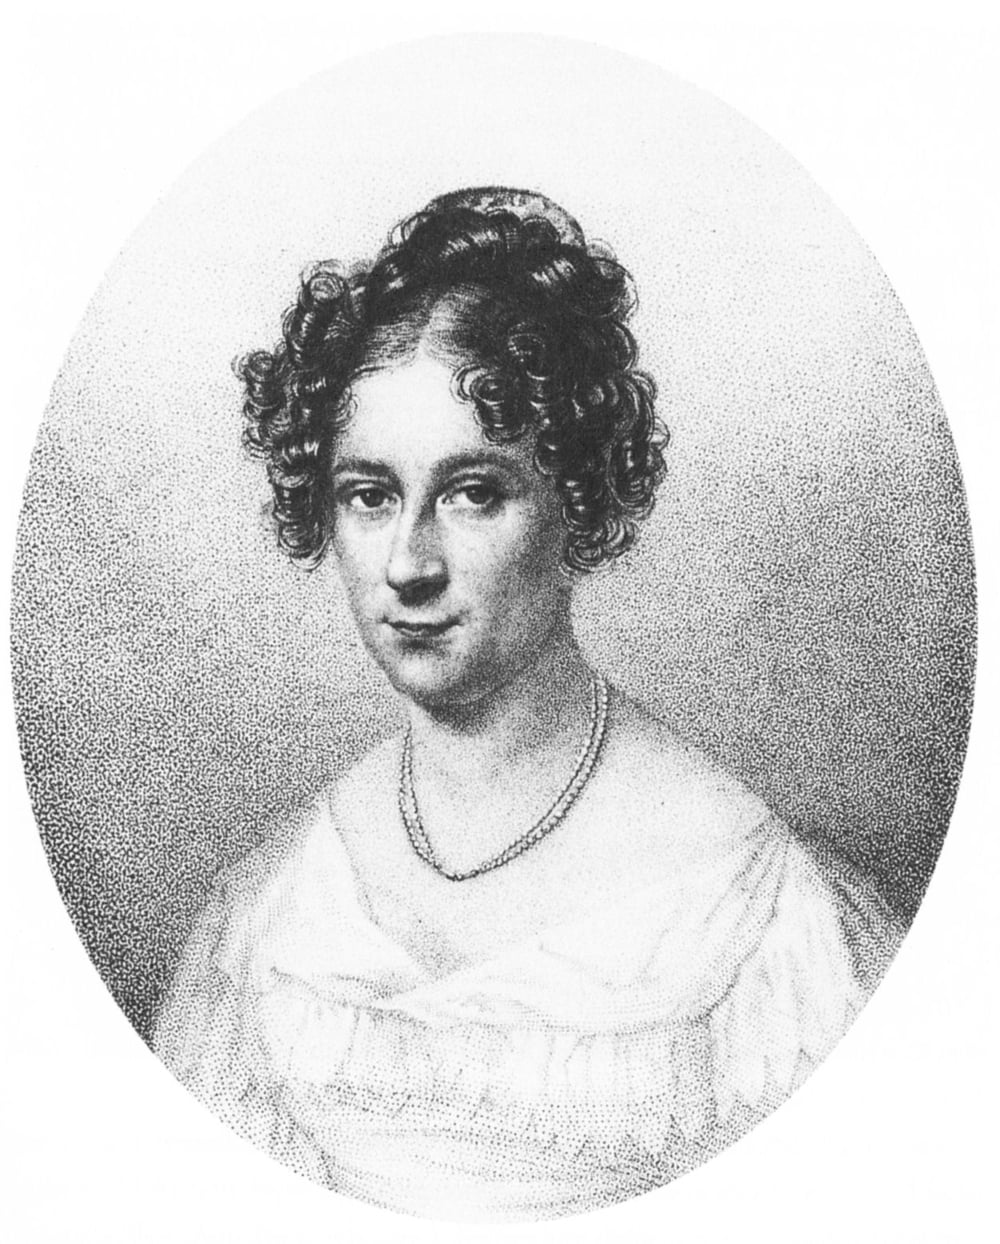 Rahel Levin Varnhagen (1771-1833), intellectual and salonniere. She converted to Christianity in 1814, before marrying Karl August Varnhagen von Ense.